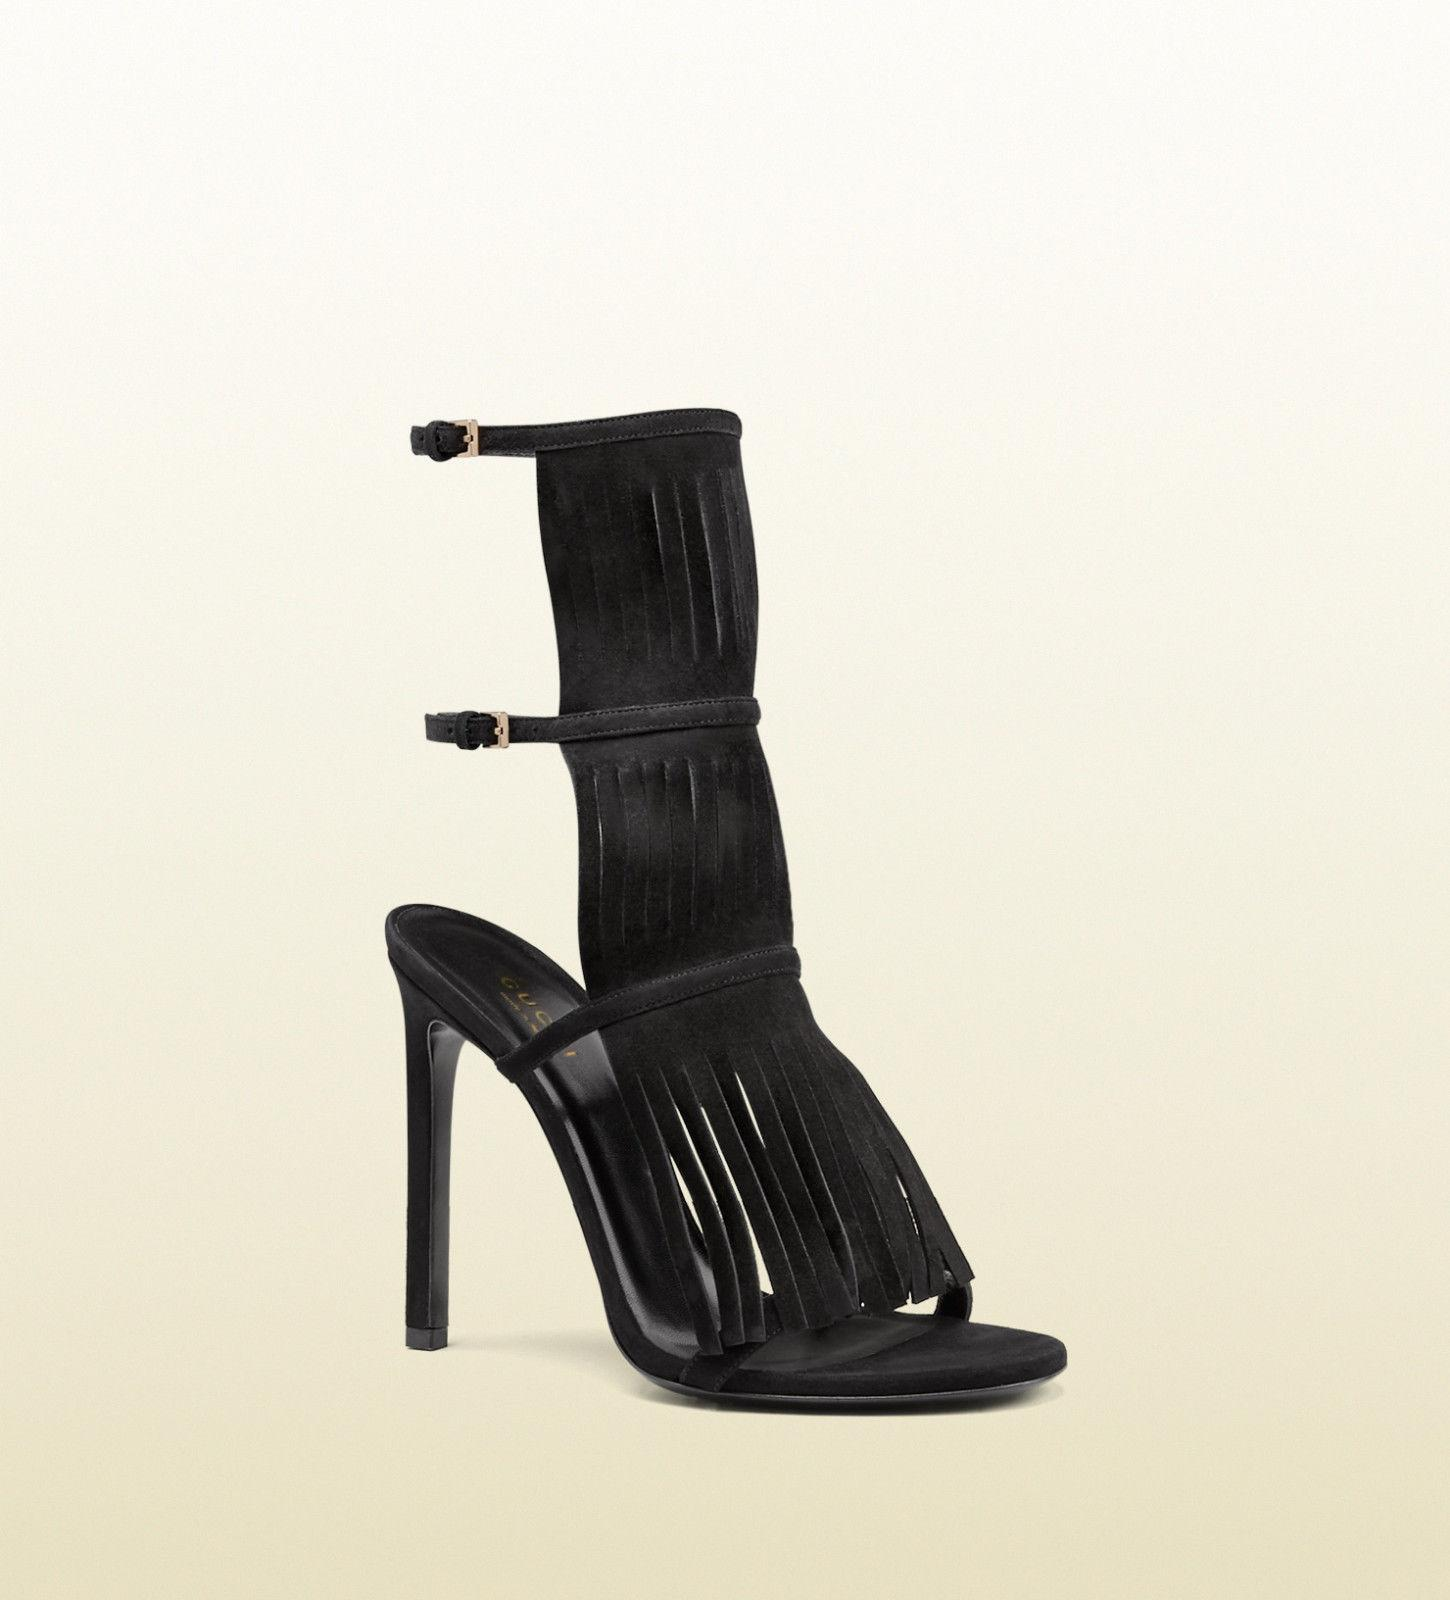 Gucci Black Suede Becky High Heel Fringe Sandal 36 Heels Double Ankle Buckle